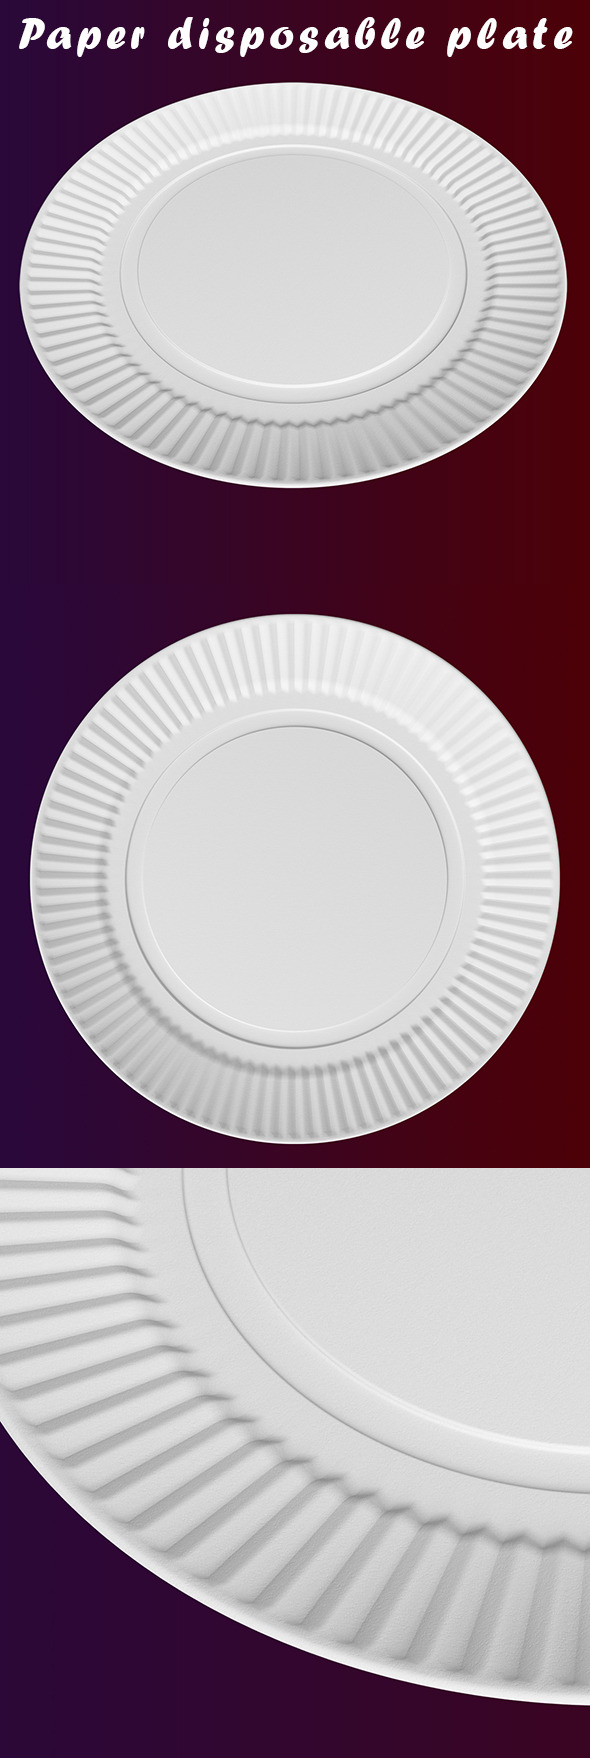 Paper disposable plate - 3DOcean Item for Sale